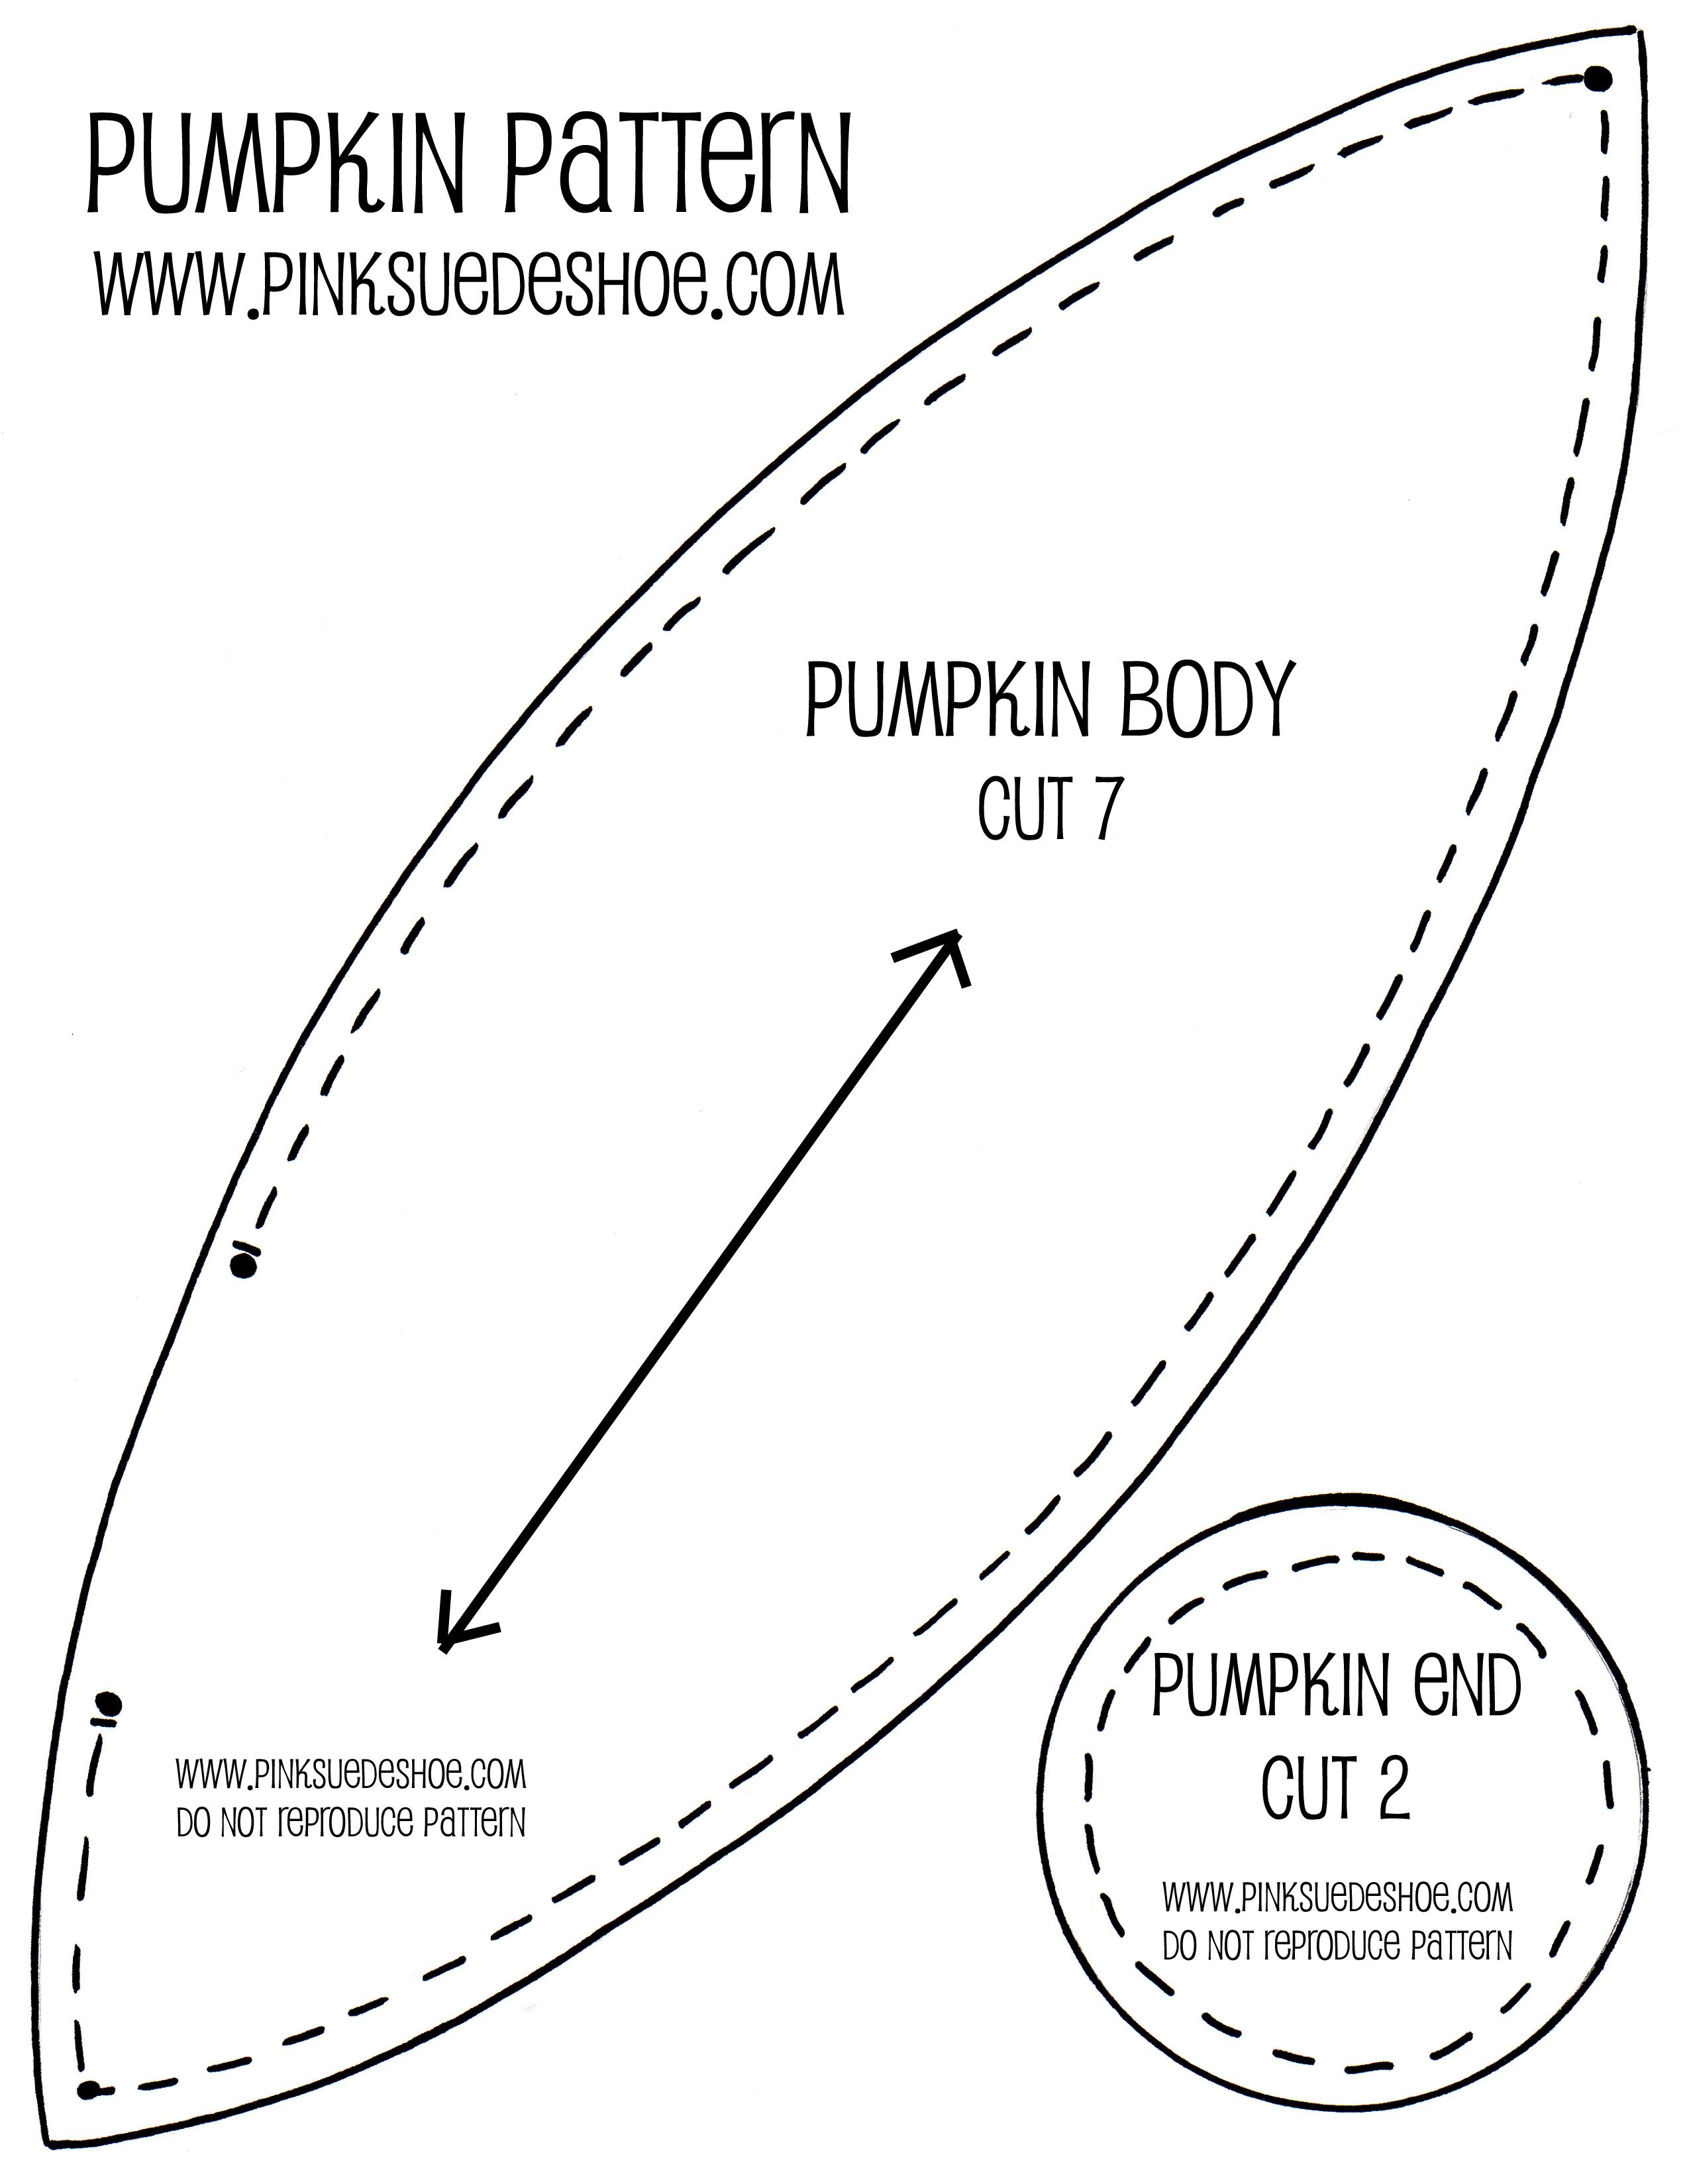 fabric pumpkin pattern free | Fall Pumpkins Tutorial | pinksuedeshoe ...